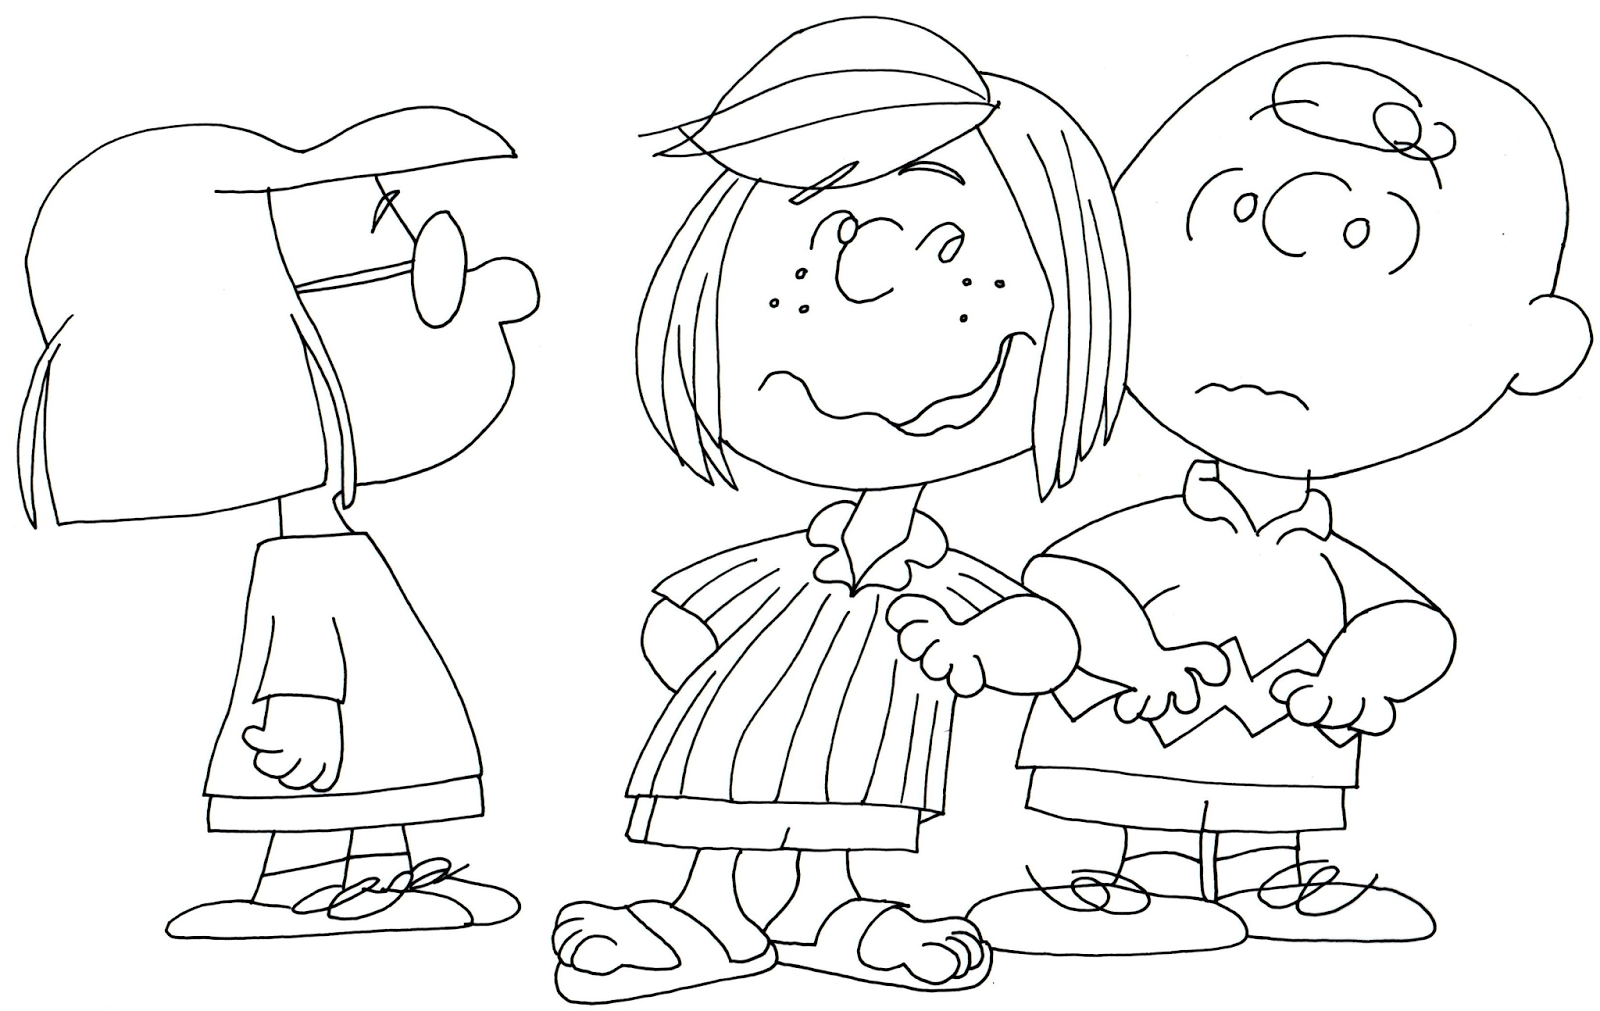 marcie peppermint charlie brown coloring page - Peanuts Coloring Pages